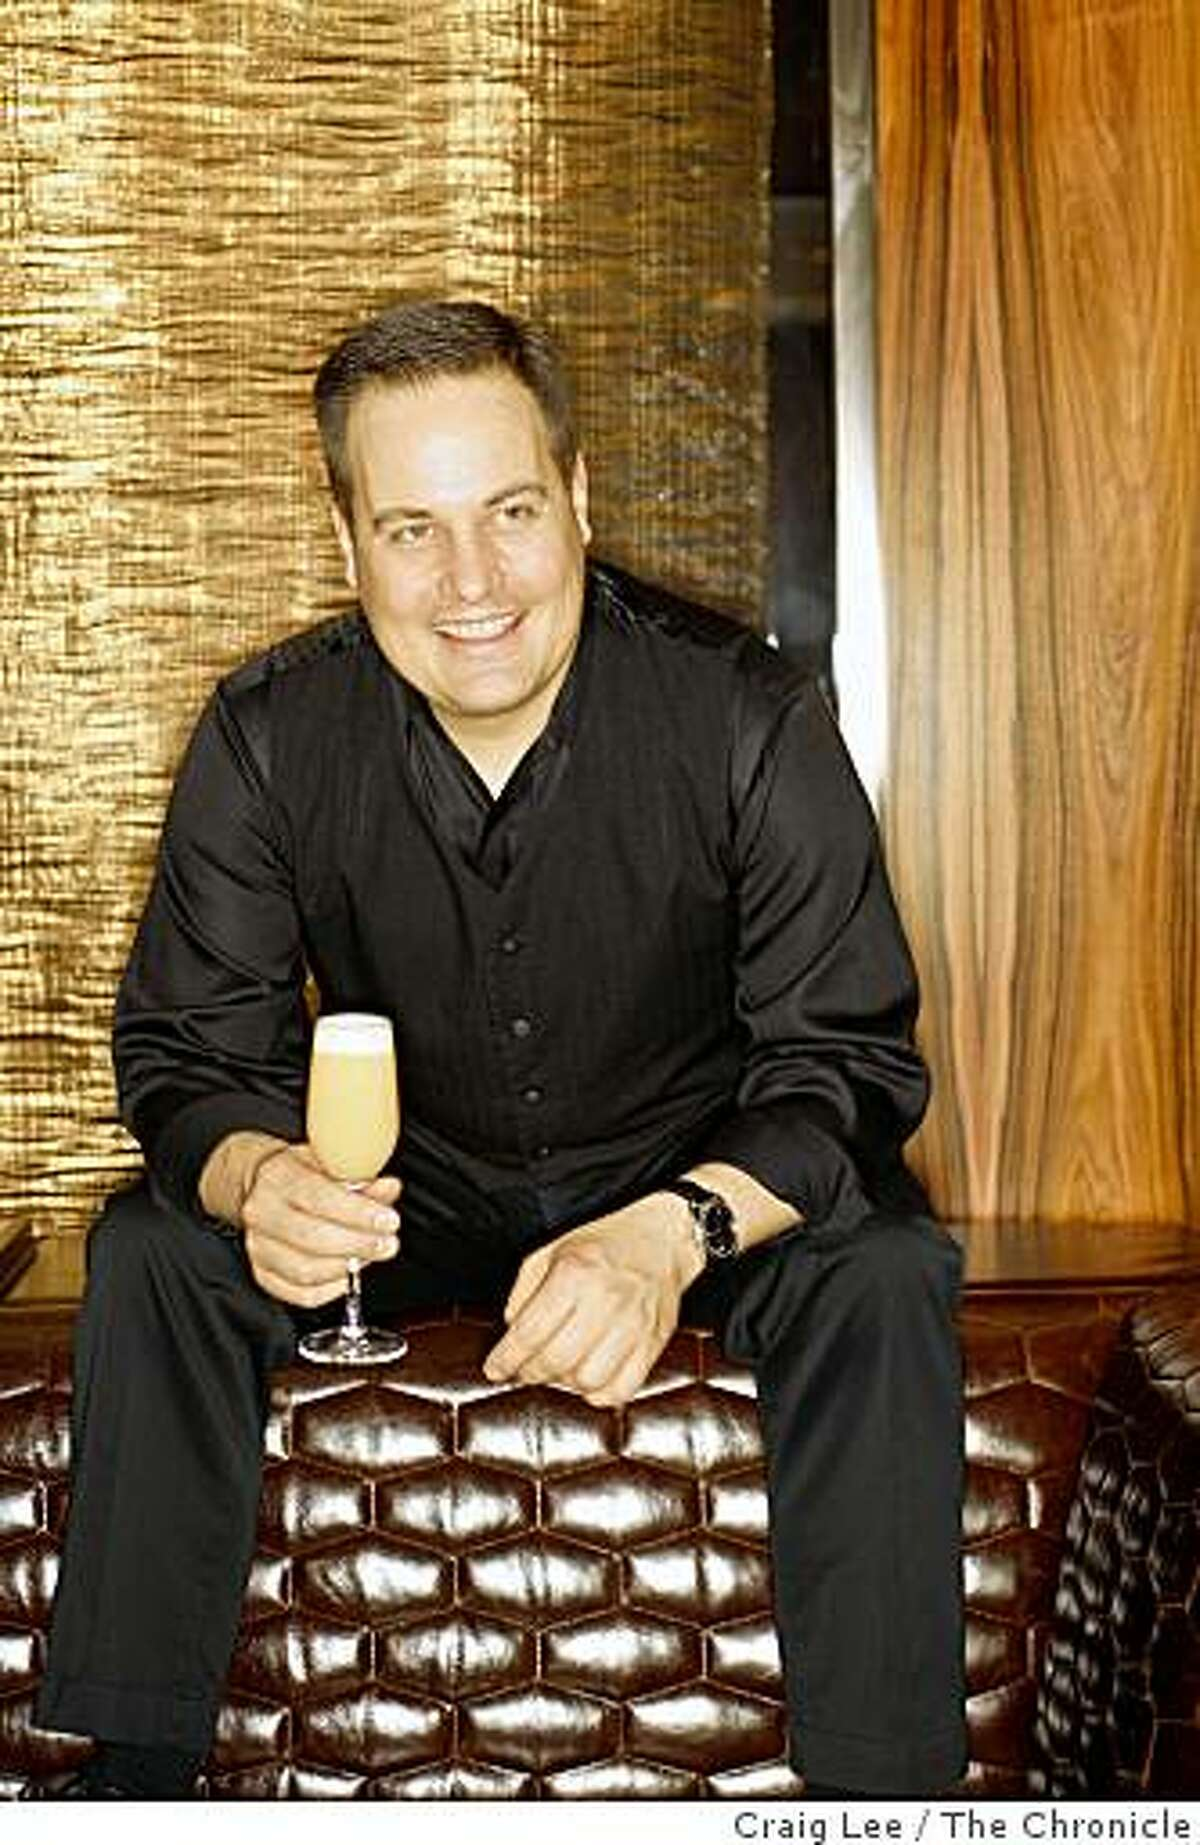 Marco Dionysos, bar manager at Clock Bar with his drink he created called English Breakfast in San Francisco, Calif., on February 18, 2009. Behind him is a curtain made of gold.